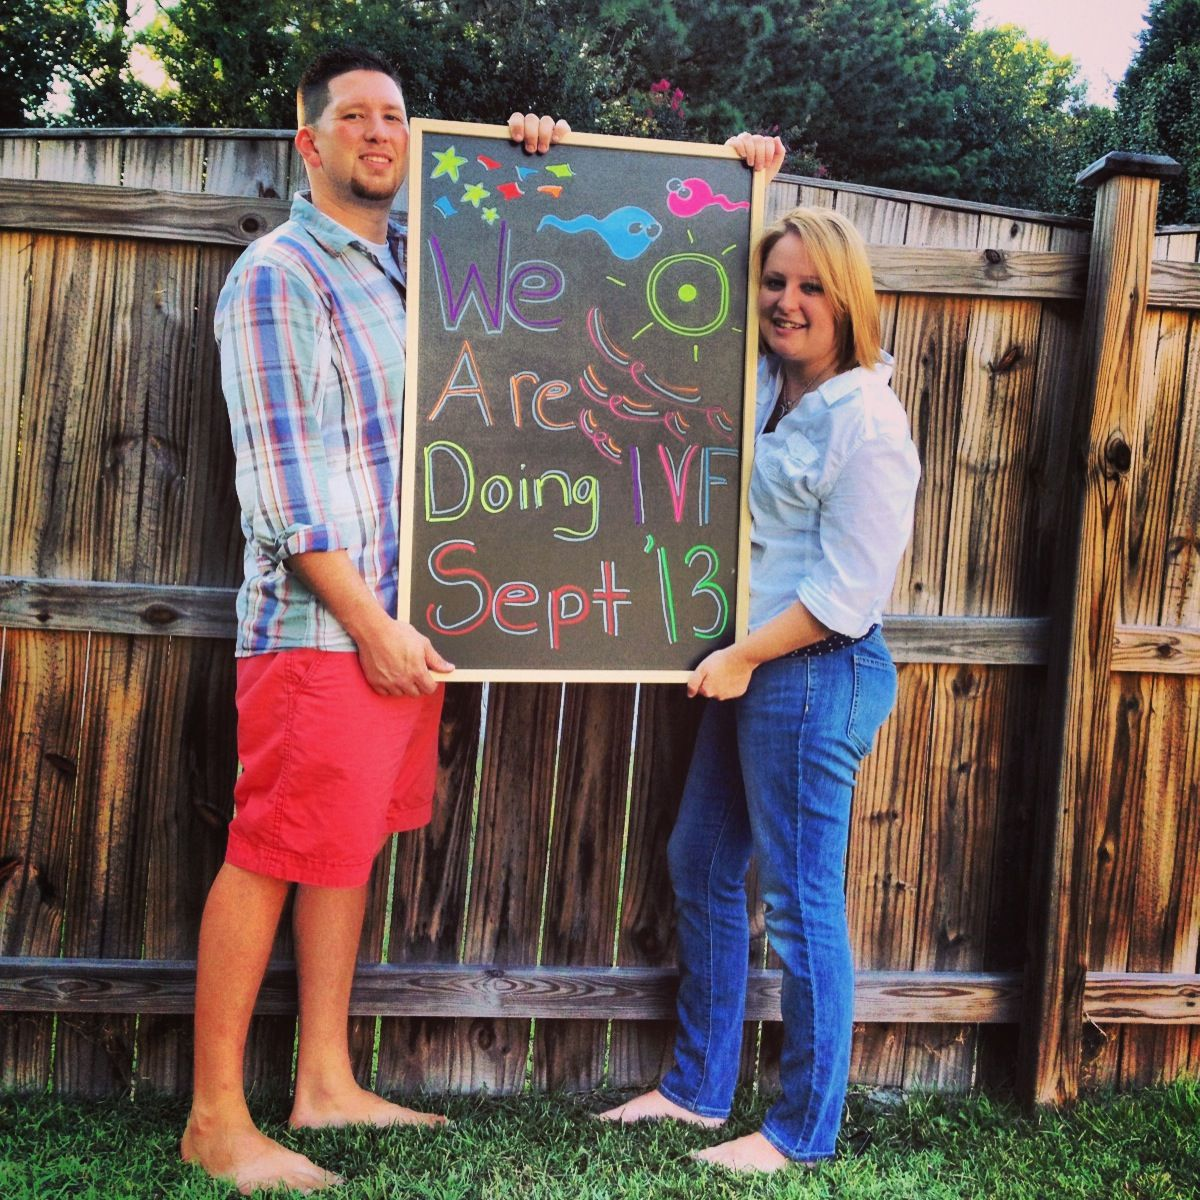 Chalkboard announcement ivf pregnancy. mine was in april, so maybe next time we do one we'll do this :)